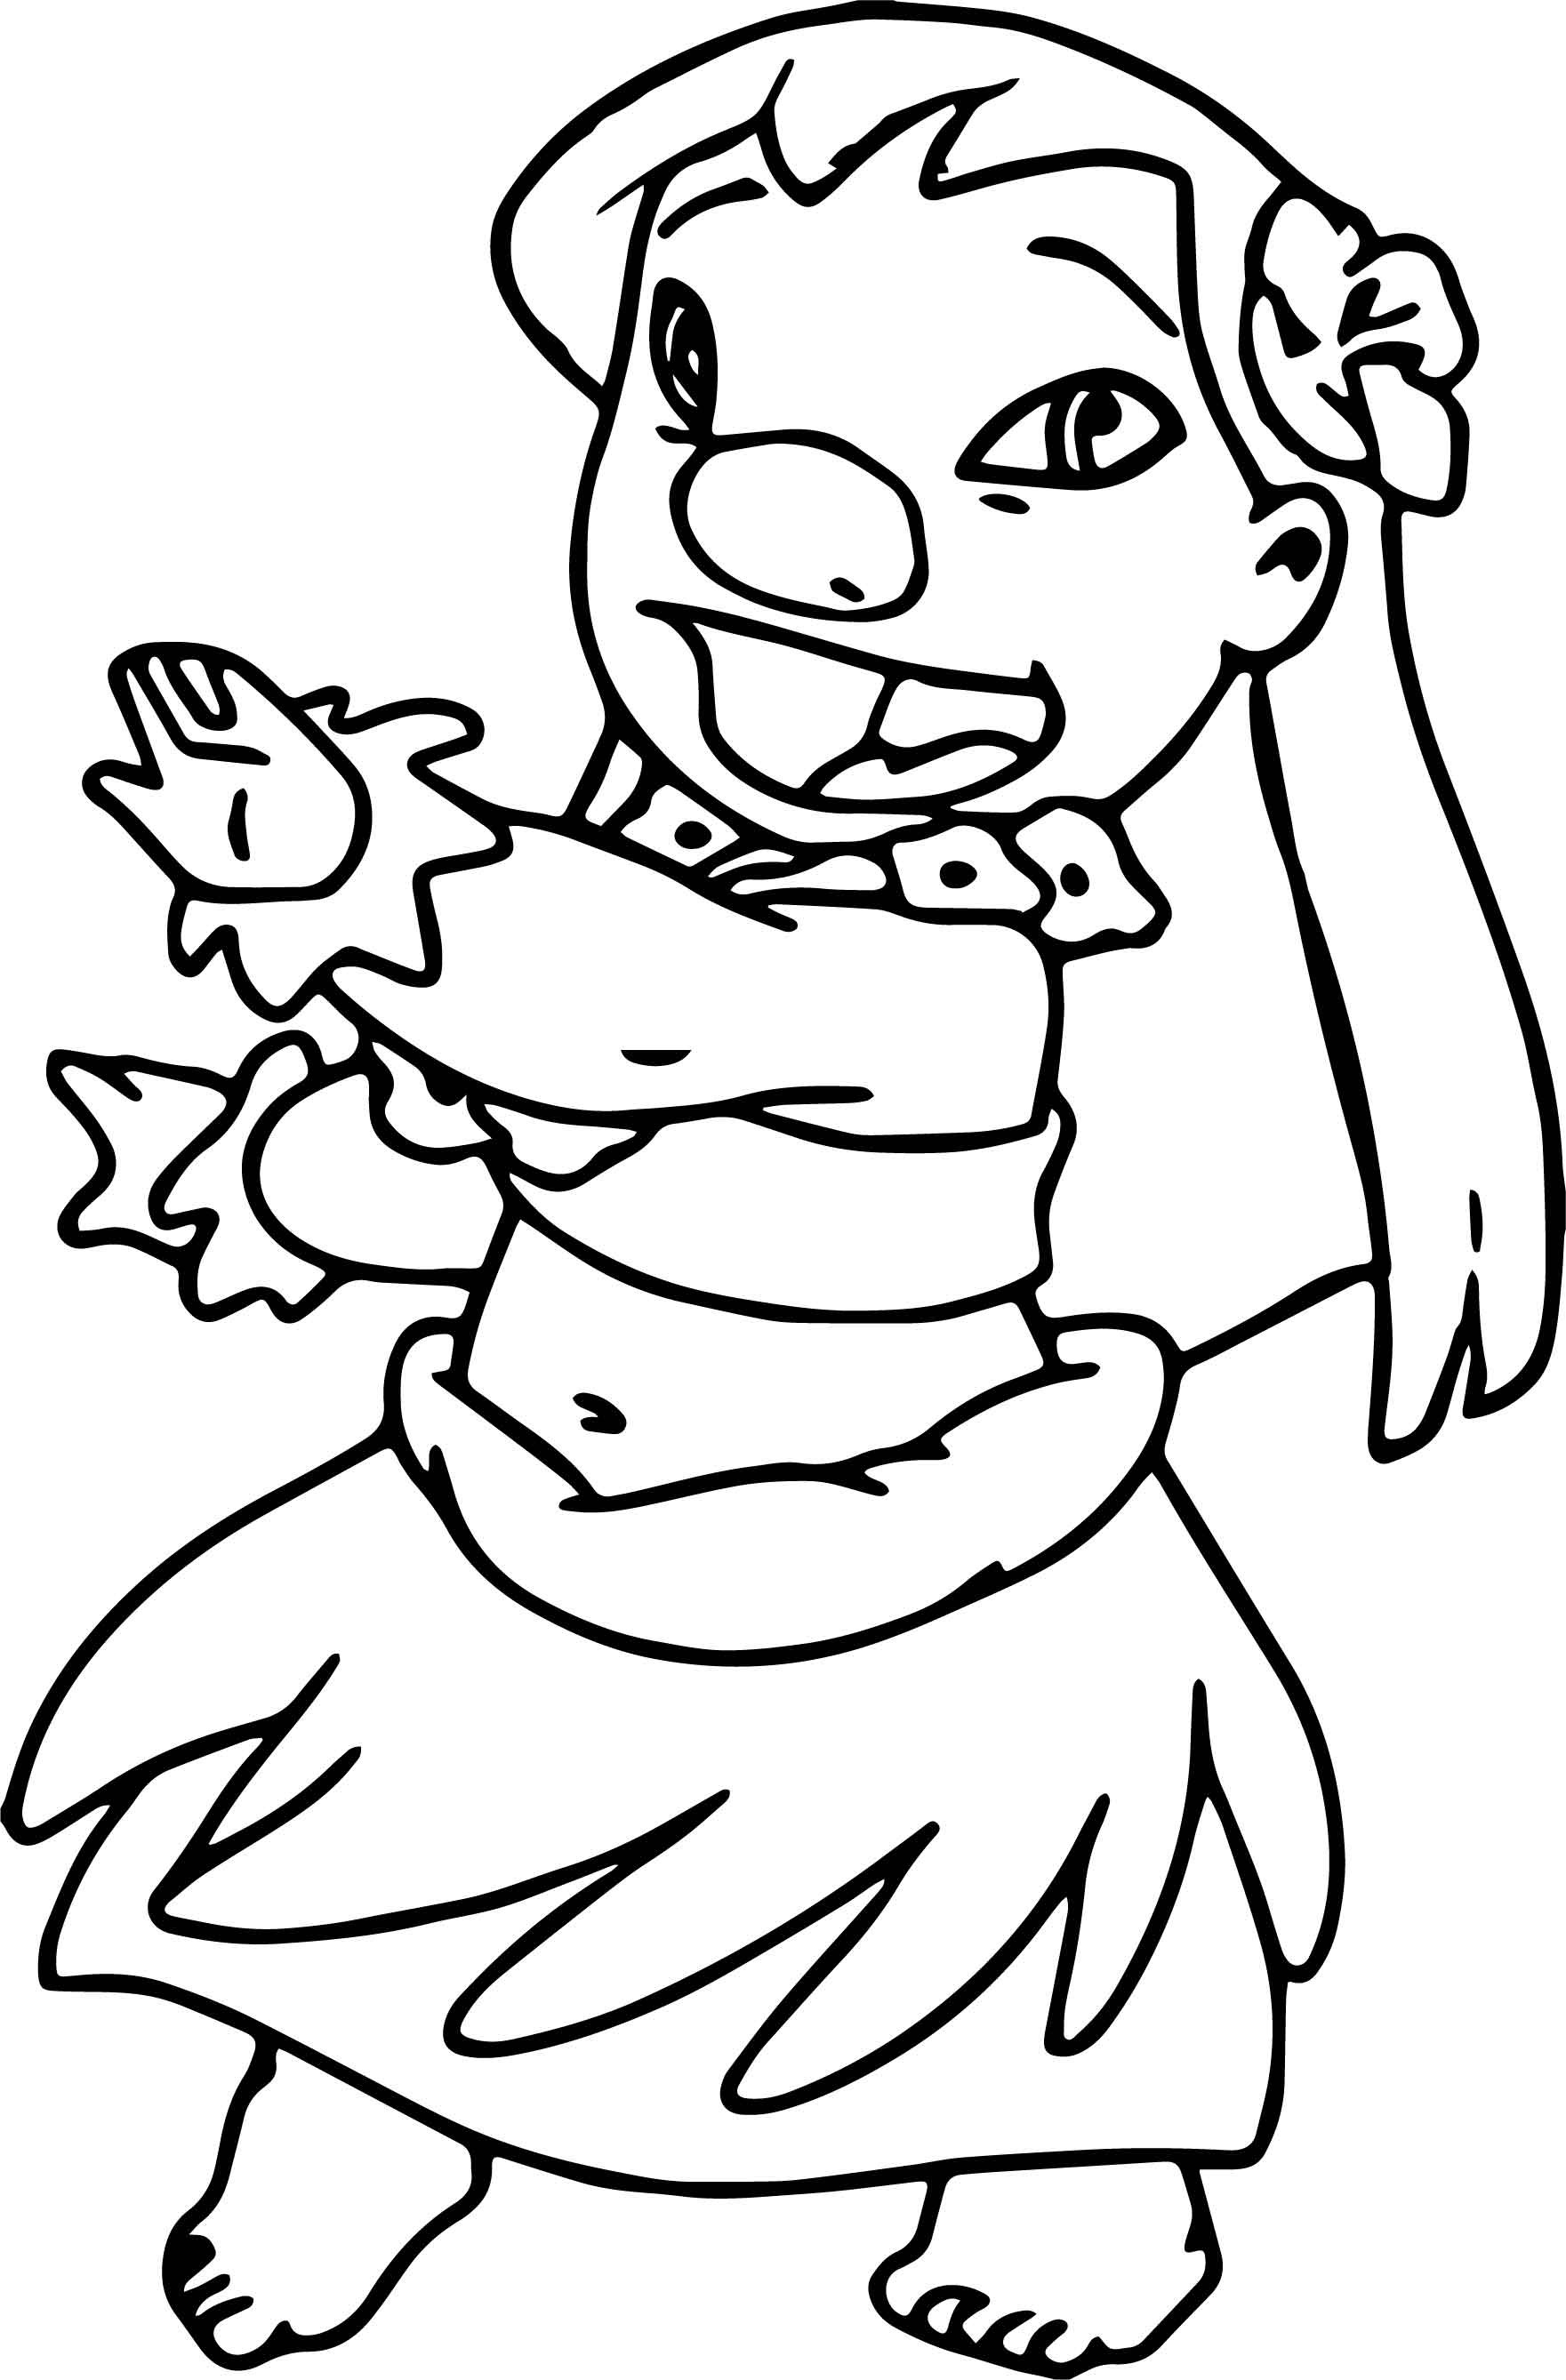 1761x2677 Fresh Lilo And Stitch On Bike Coloring Pages For Kids Beautiful